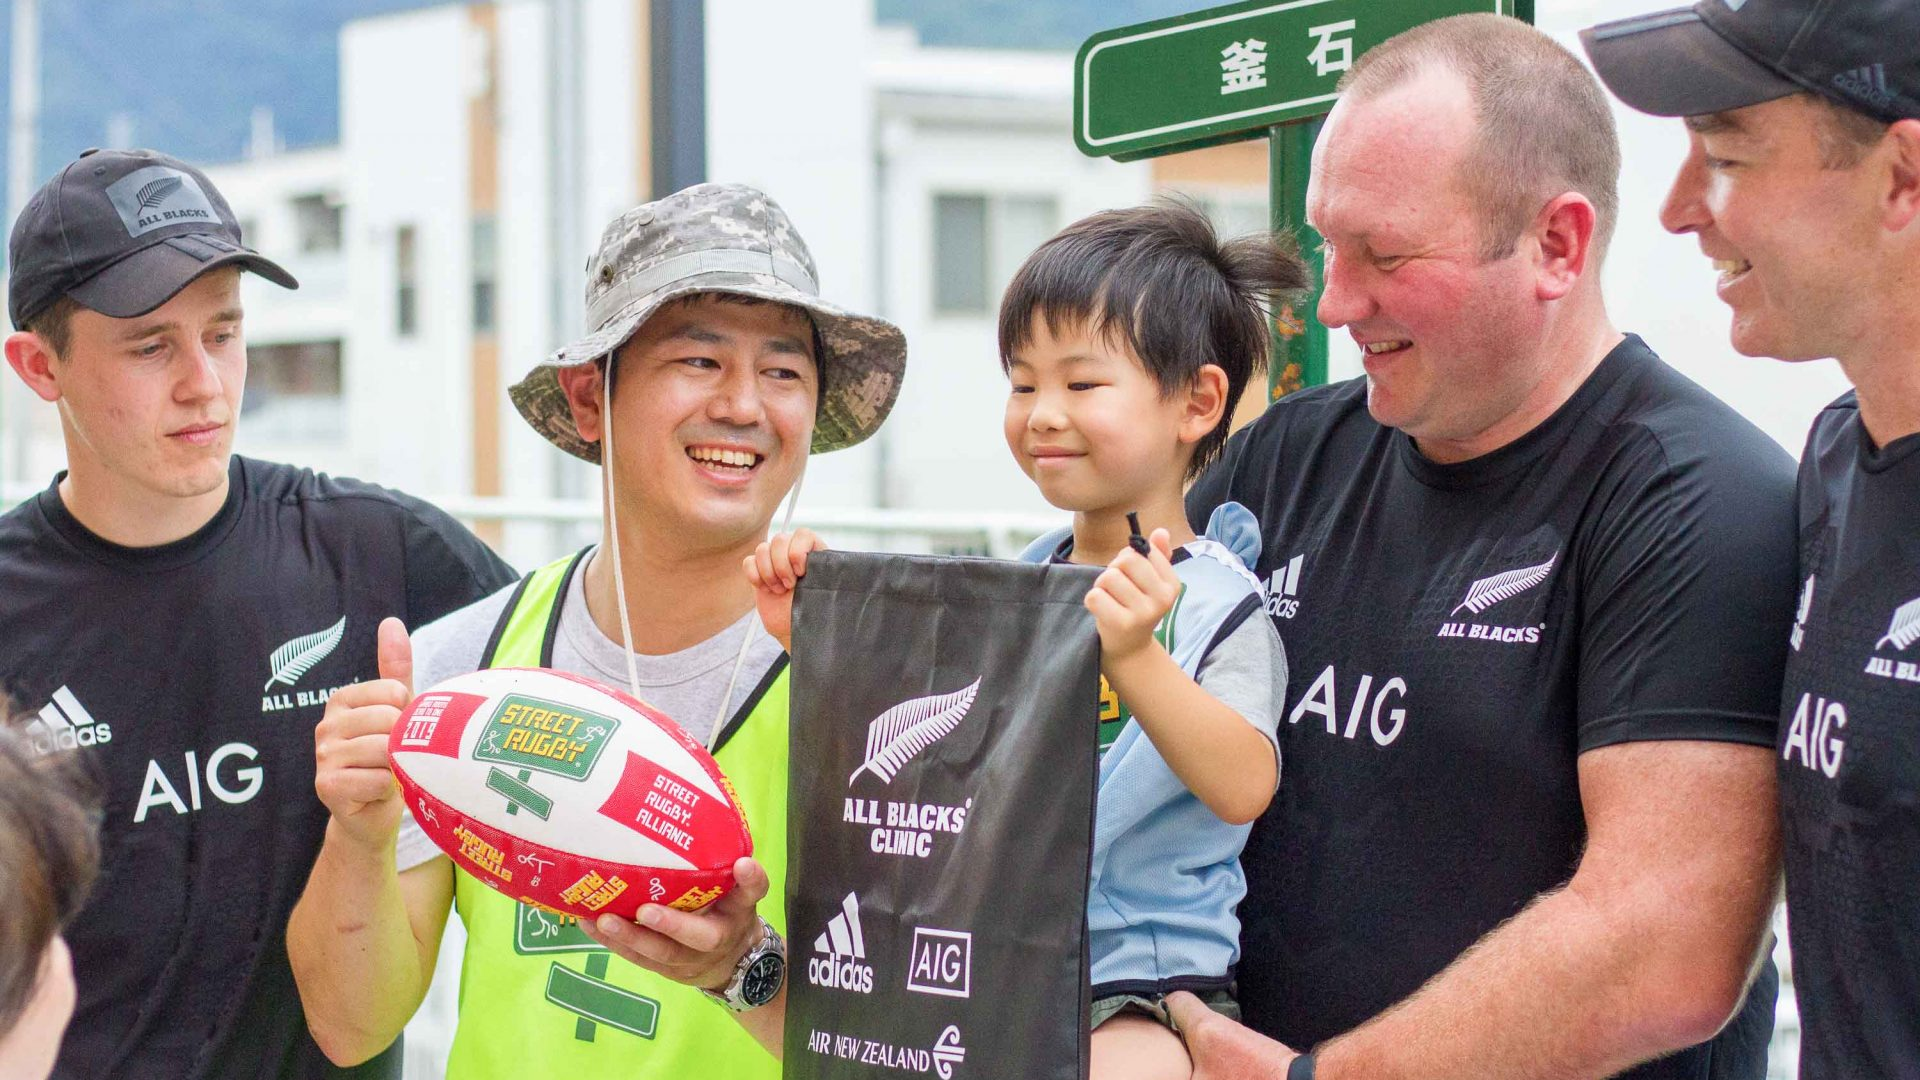 New Zealand's All Blacks Clinic Team in Kamaishi introduce locals to the game through non-contact 'street rugby'.